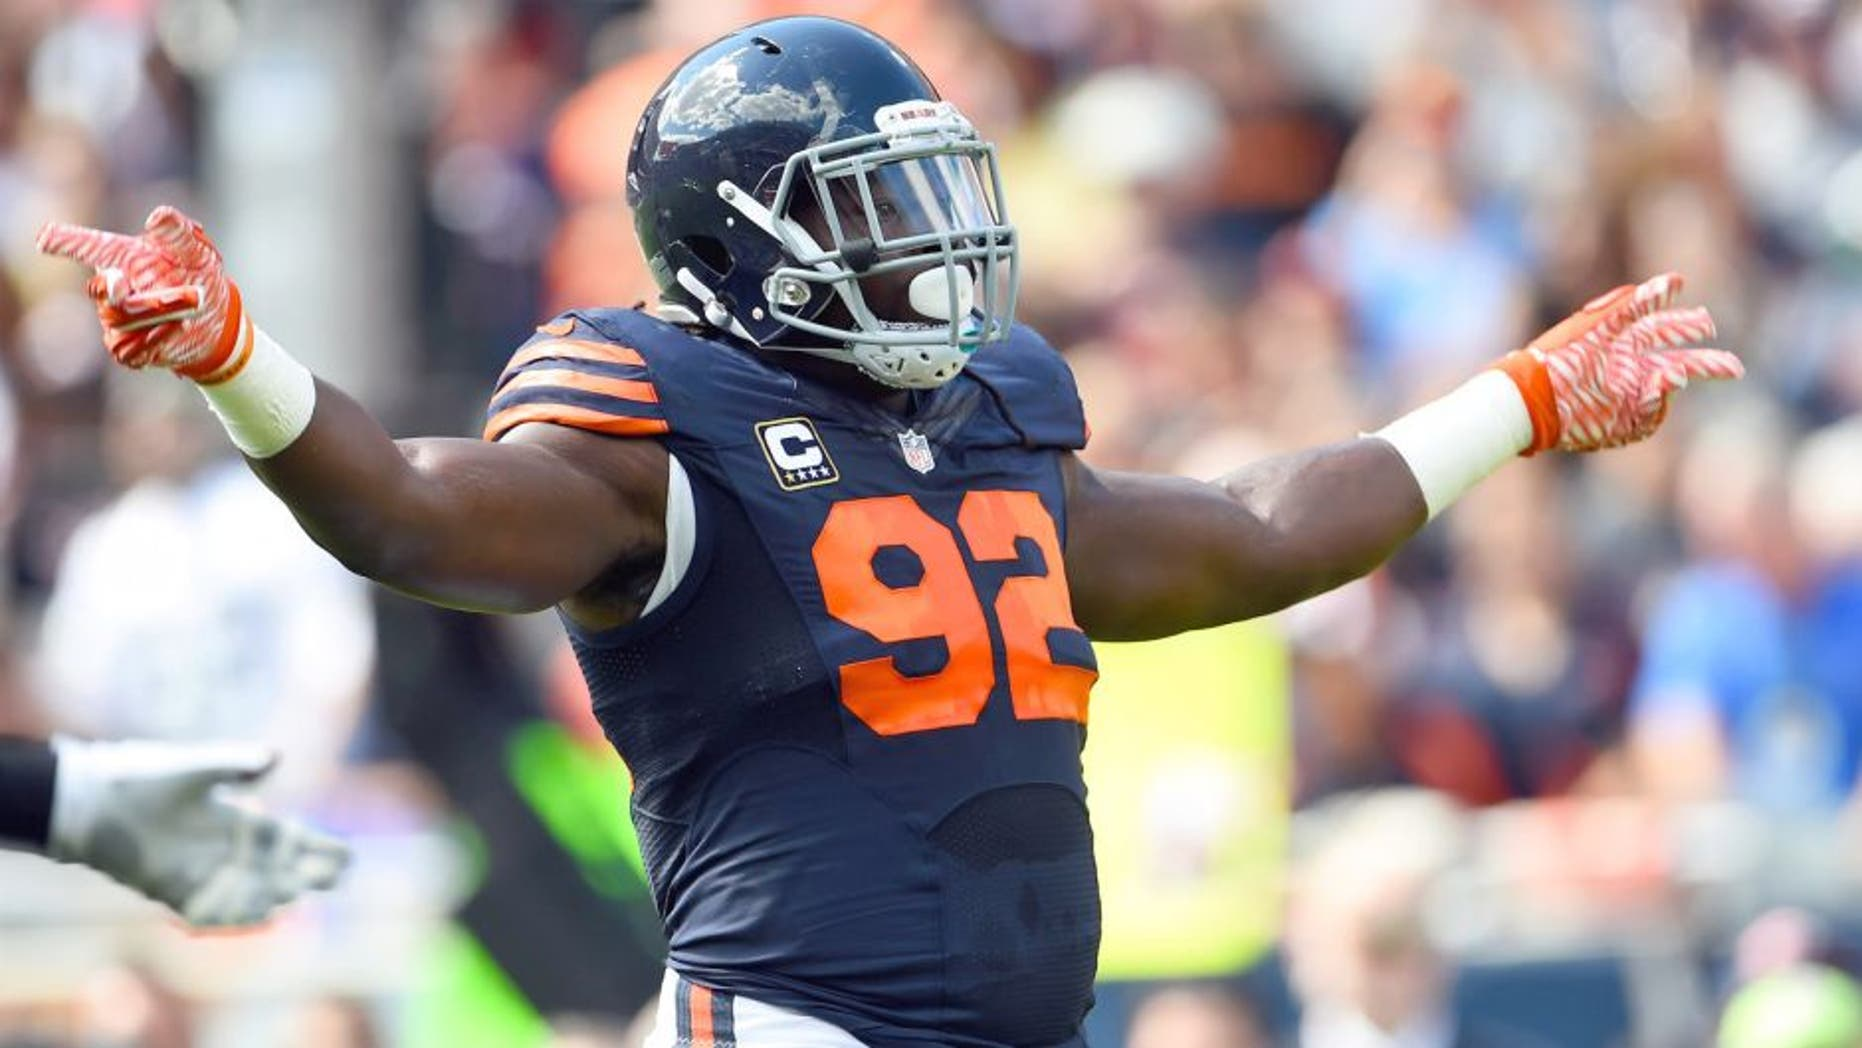 Sep 13, 2015; Chicago, IL, USA; Chicago Bears linebacker Pernell McPhee (92) during the second quarter at Soldier Field. Mandatory Credit: Mike DiNovo-USA TODAY Sports